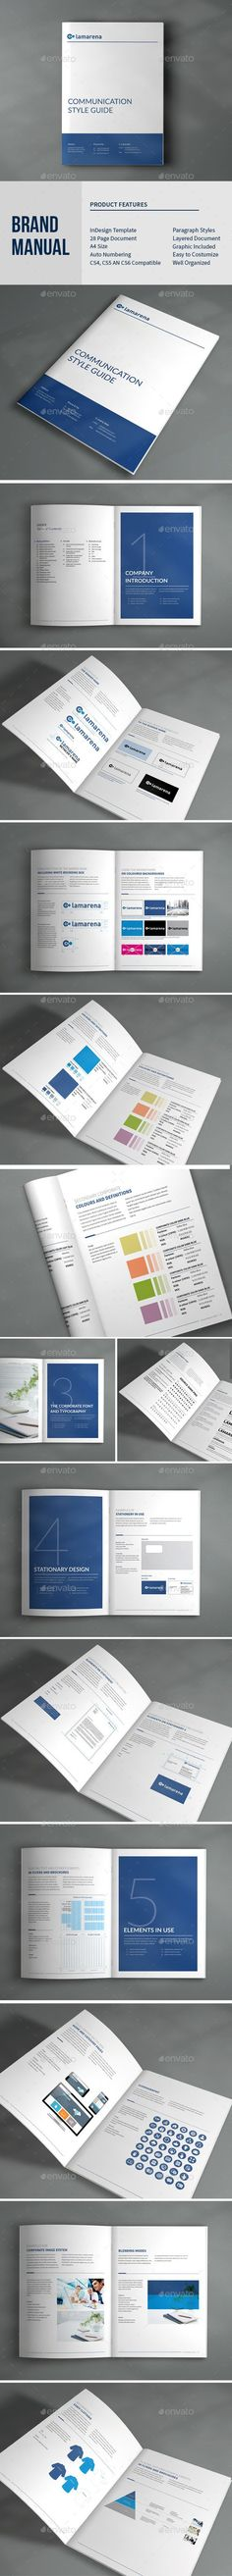 Employee Handbook Manual | Pinterest | Employee handbook, Indesign ...